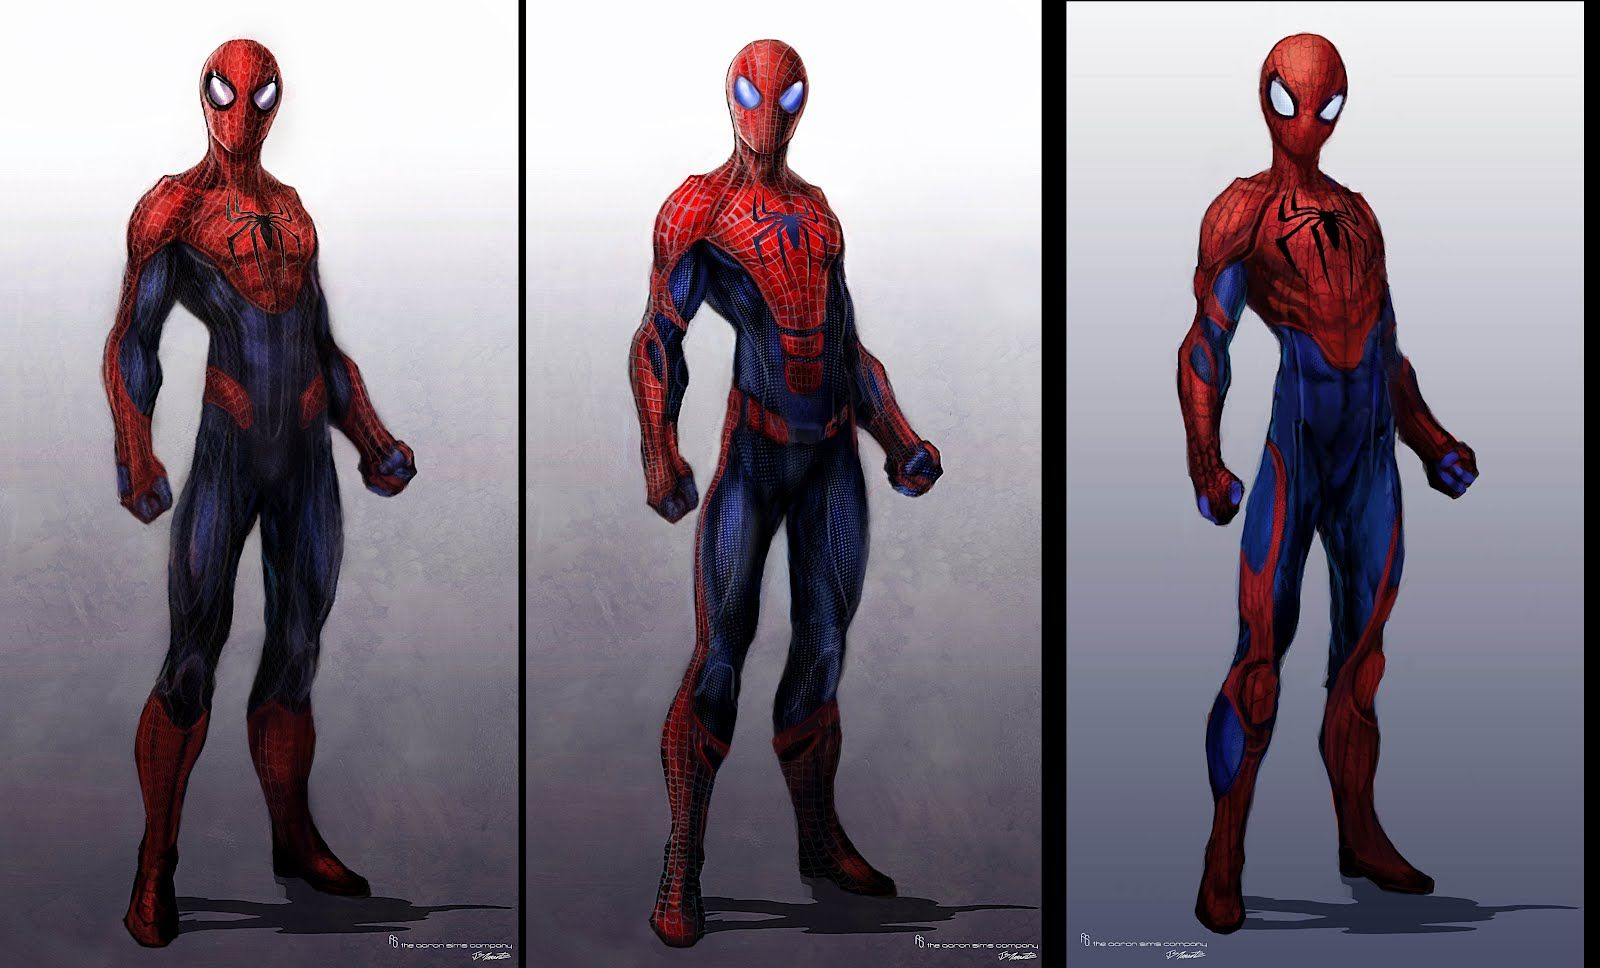 \u0027Amazing Spider,Man\u0027 Alternate Costumes Reveal What Might Have Been